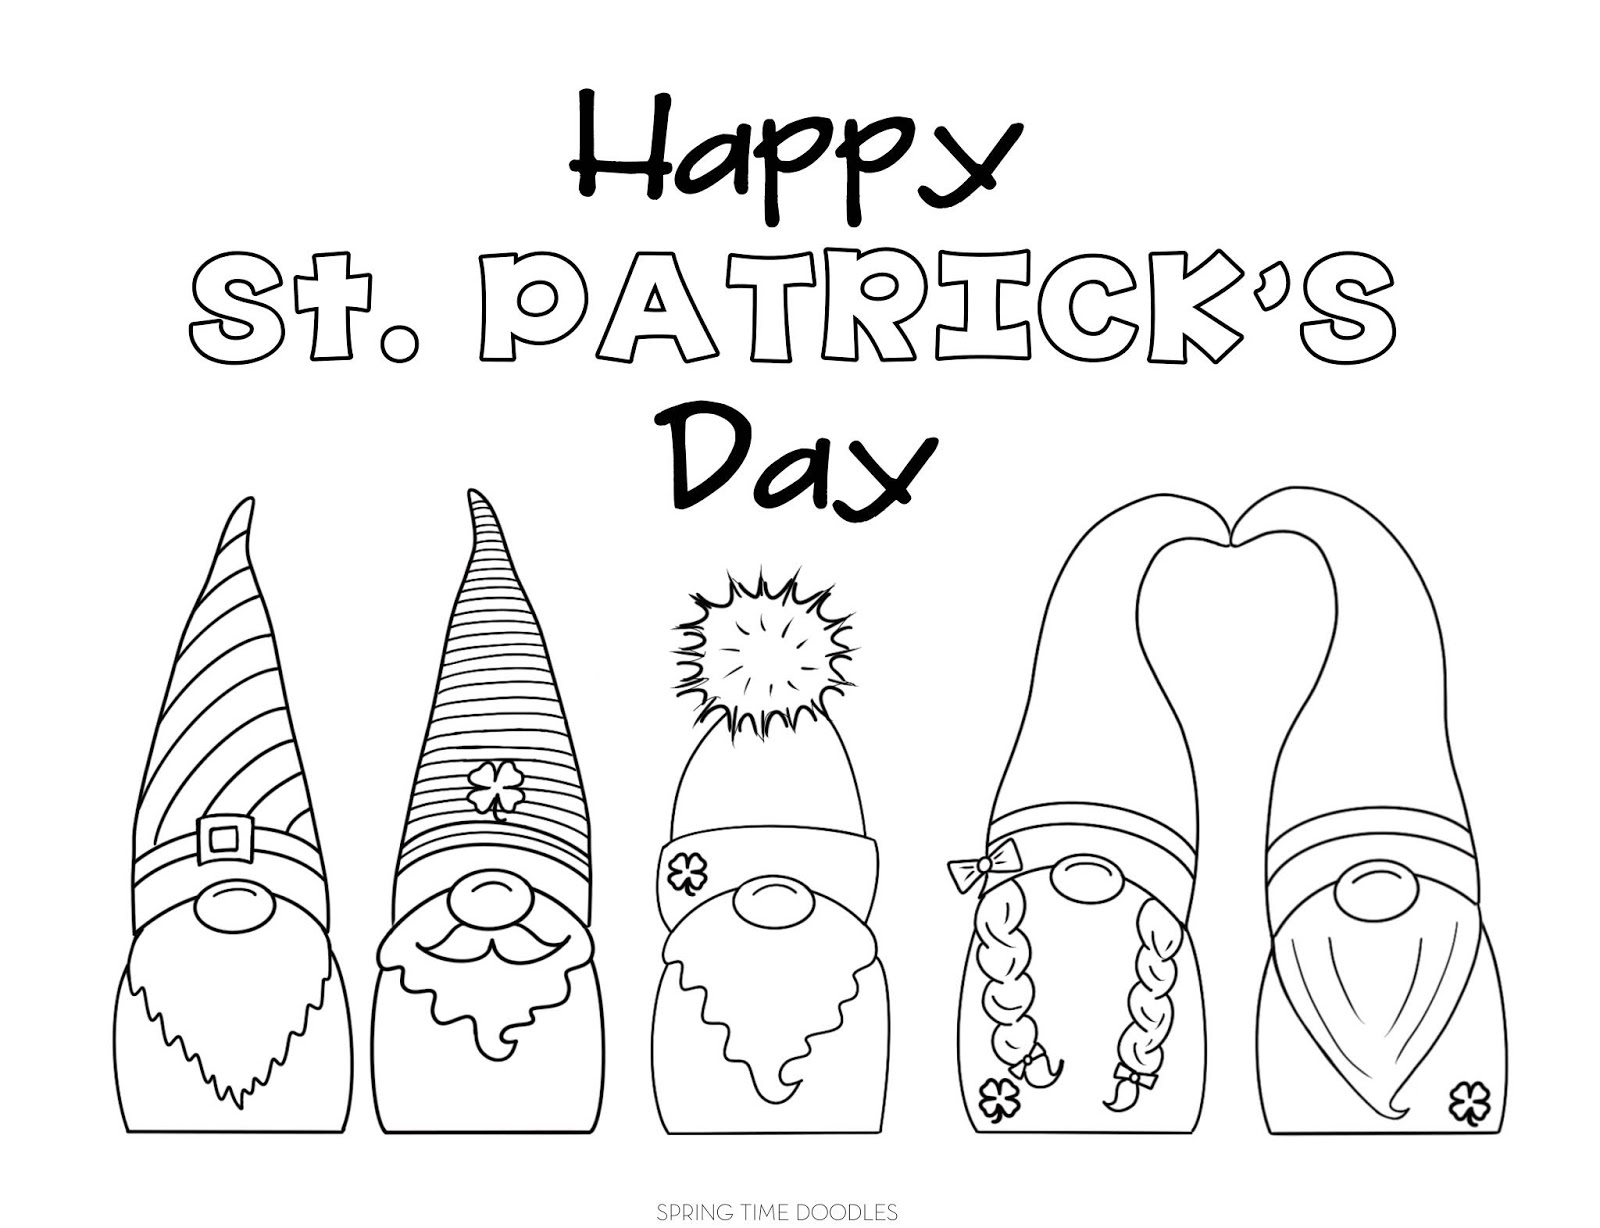 coloring book day 2020 st patrick39s day 2020 free coloring pages day 2020 coloring book